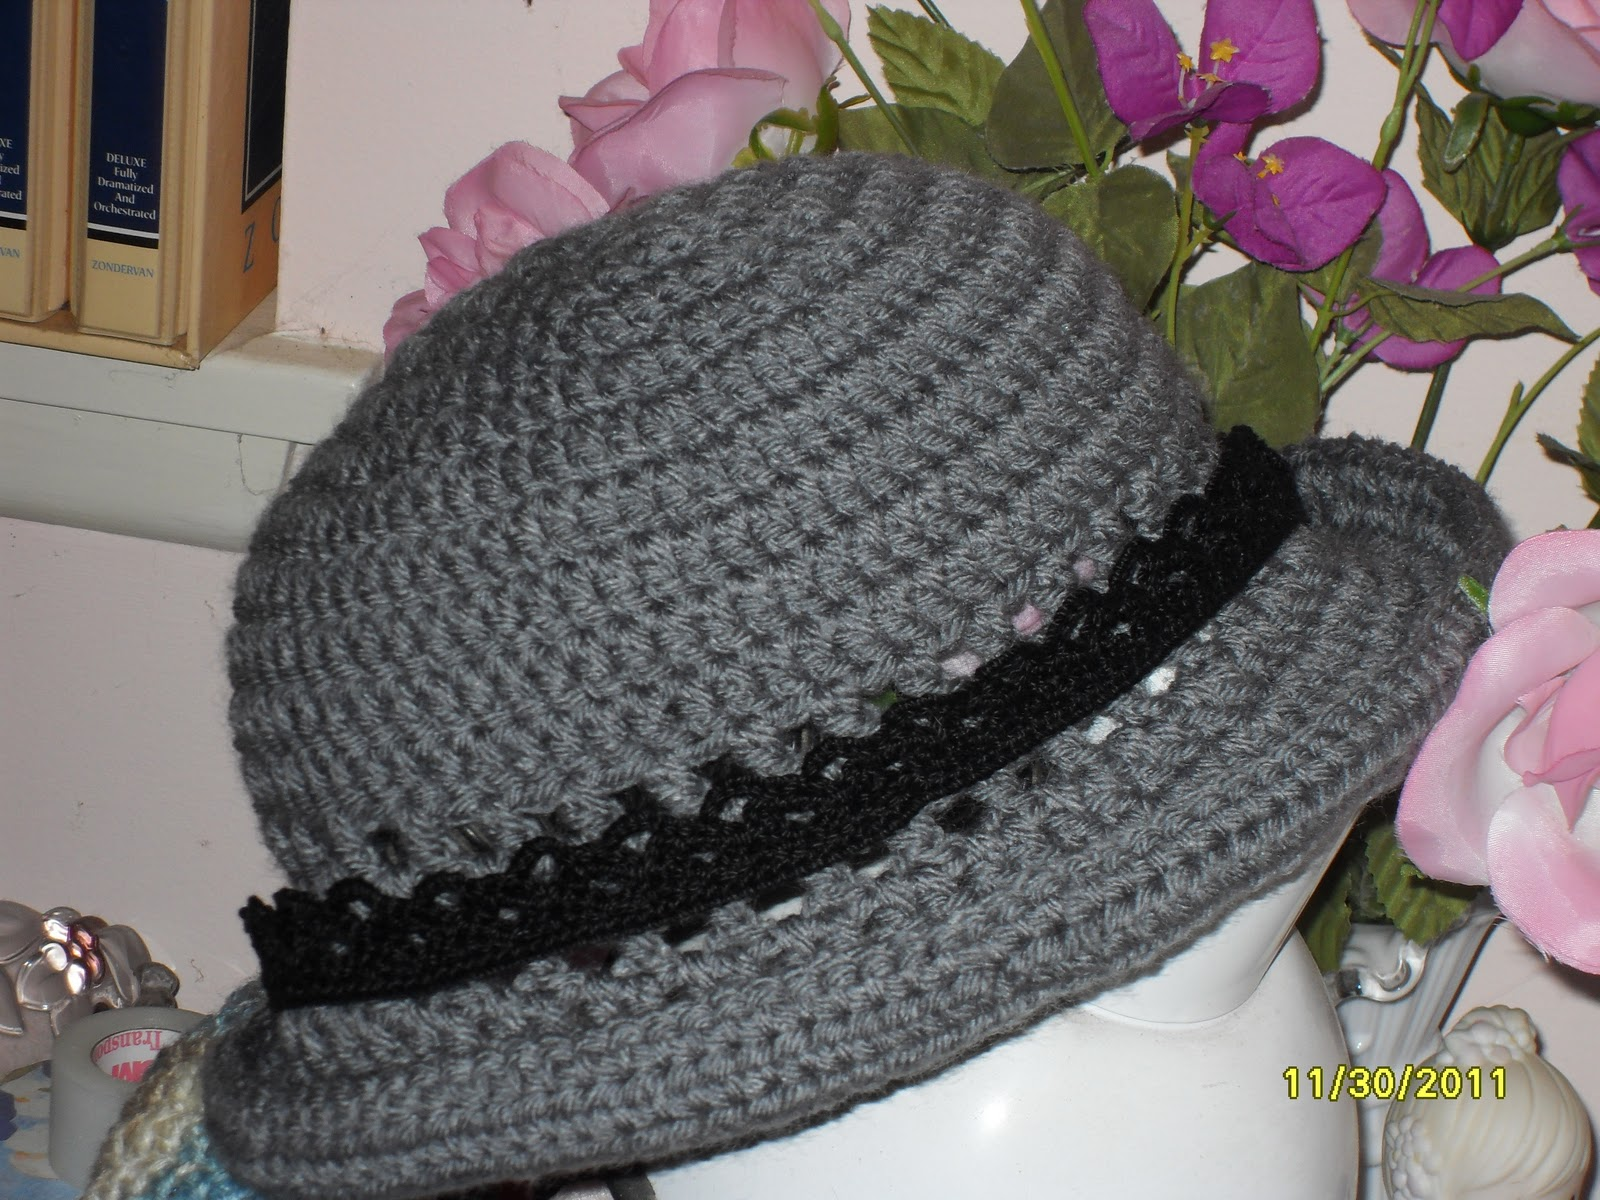 Simple Crochet : Ten Easy Hats to Crochet is my first eBook with 10 crochet hat ...